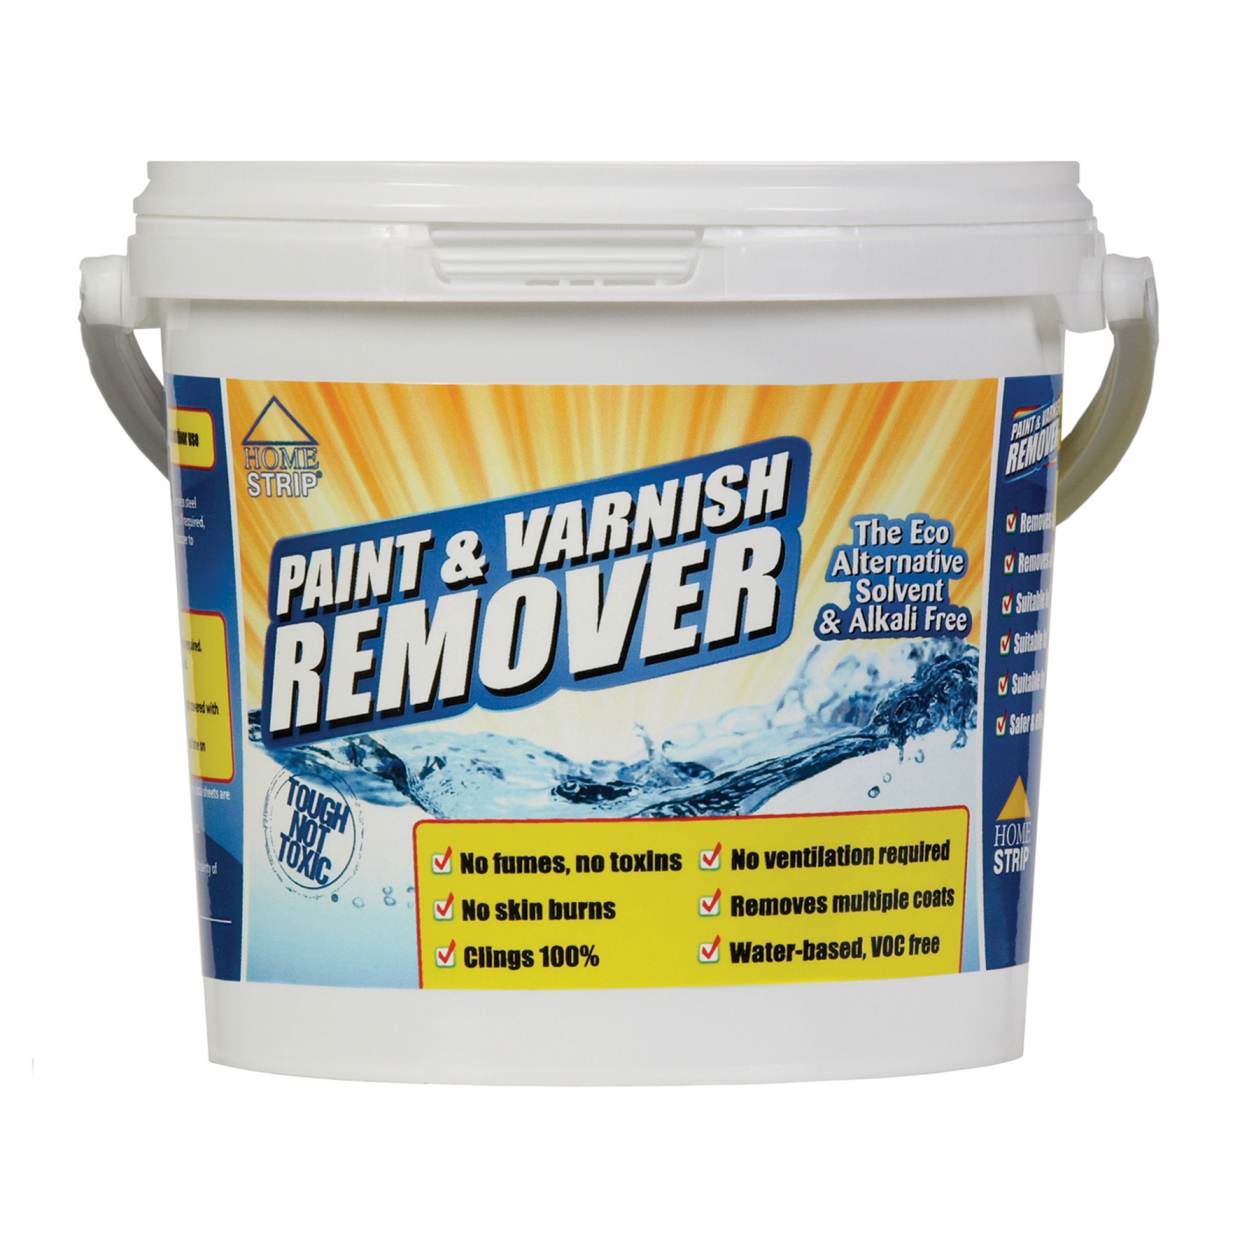 HOME STRIP PAINT REMOVER